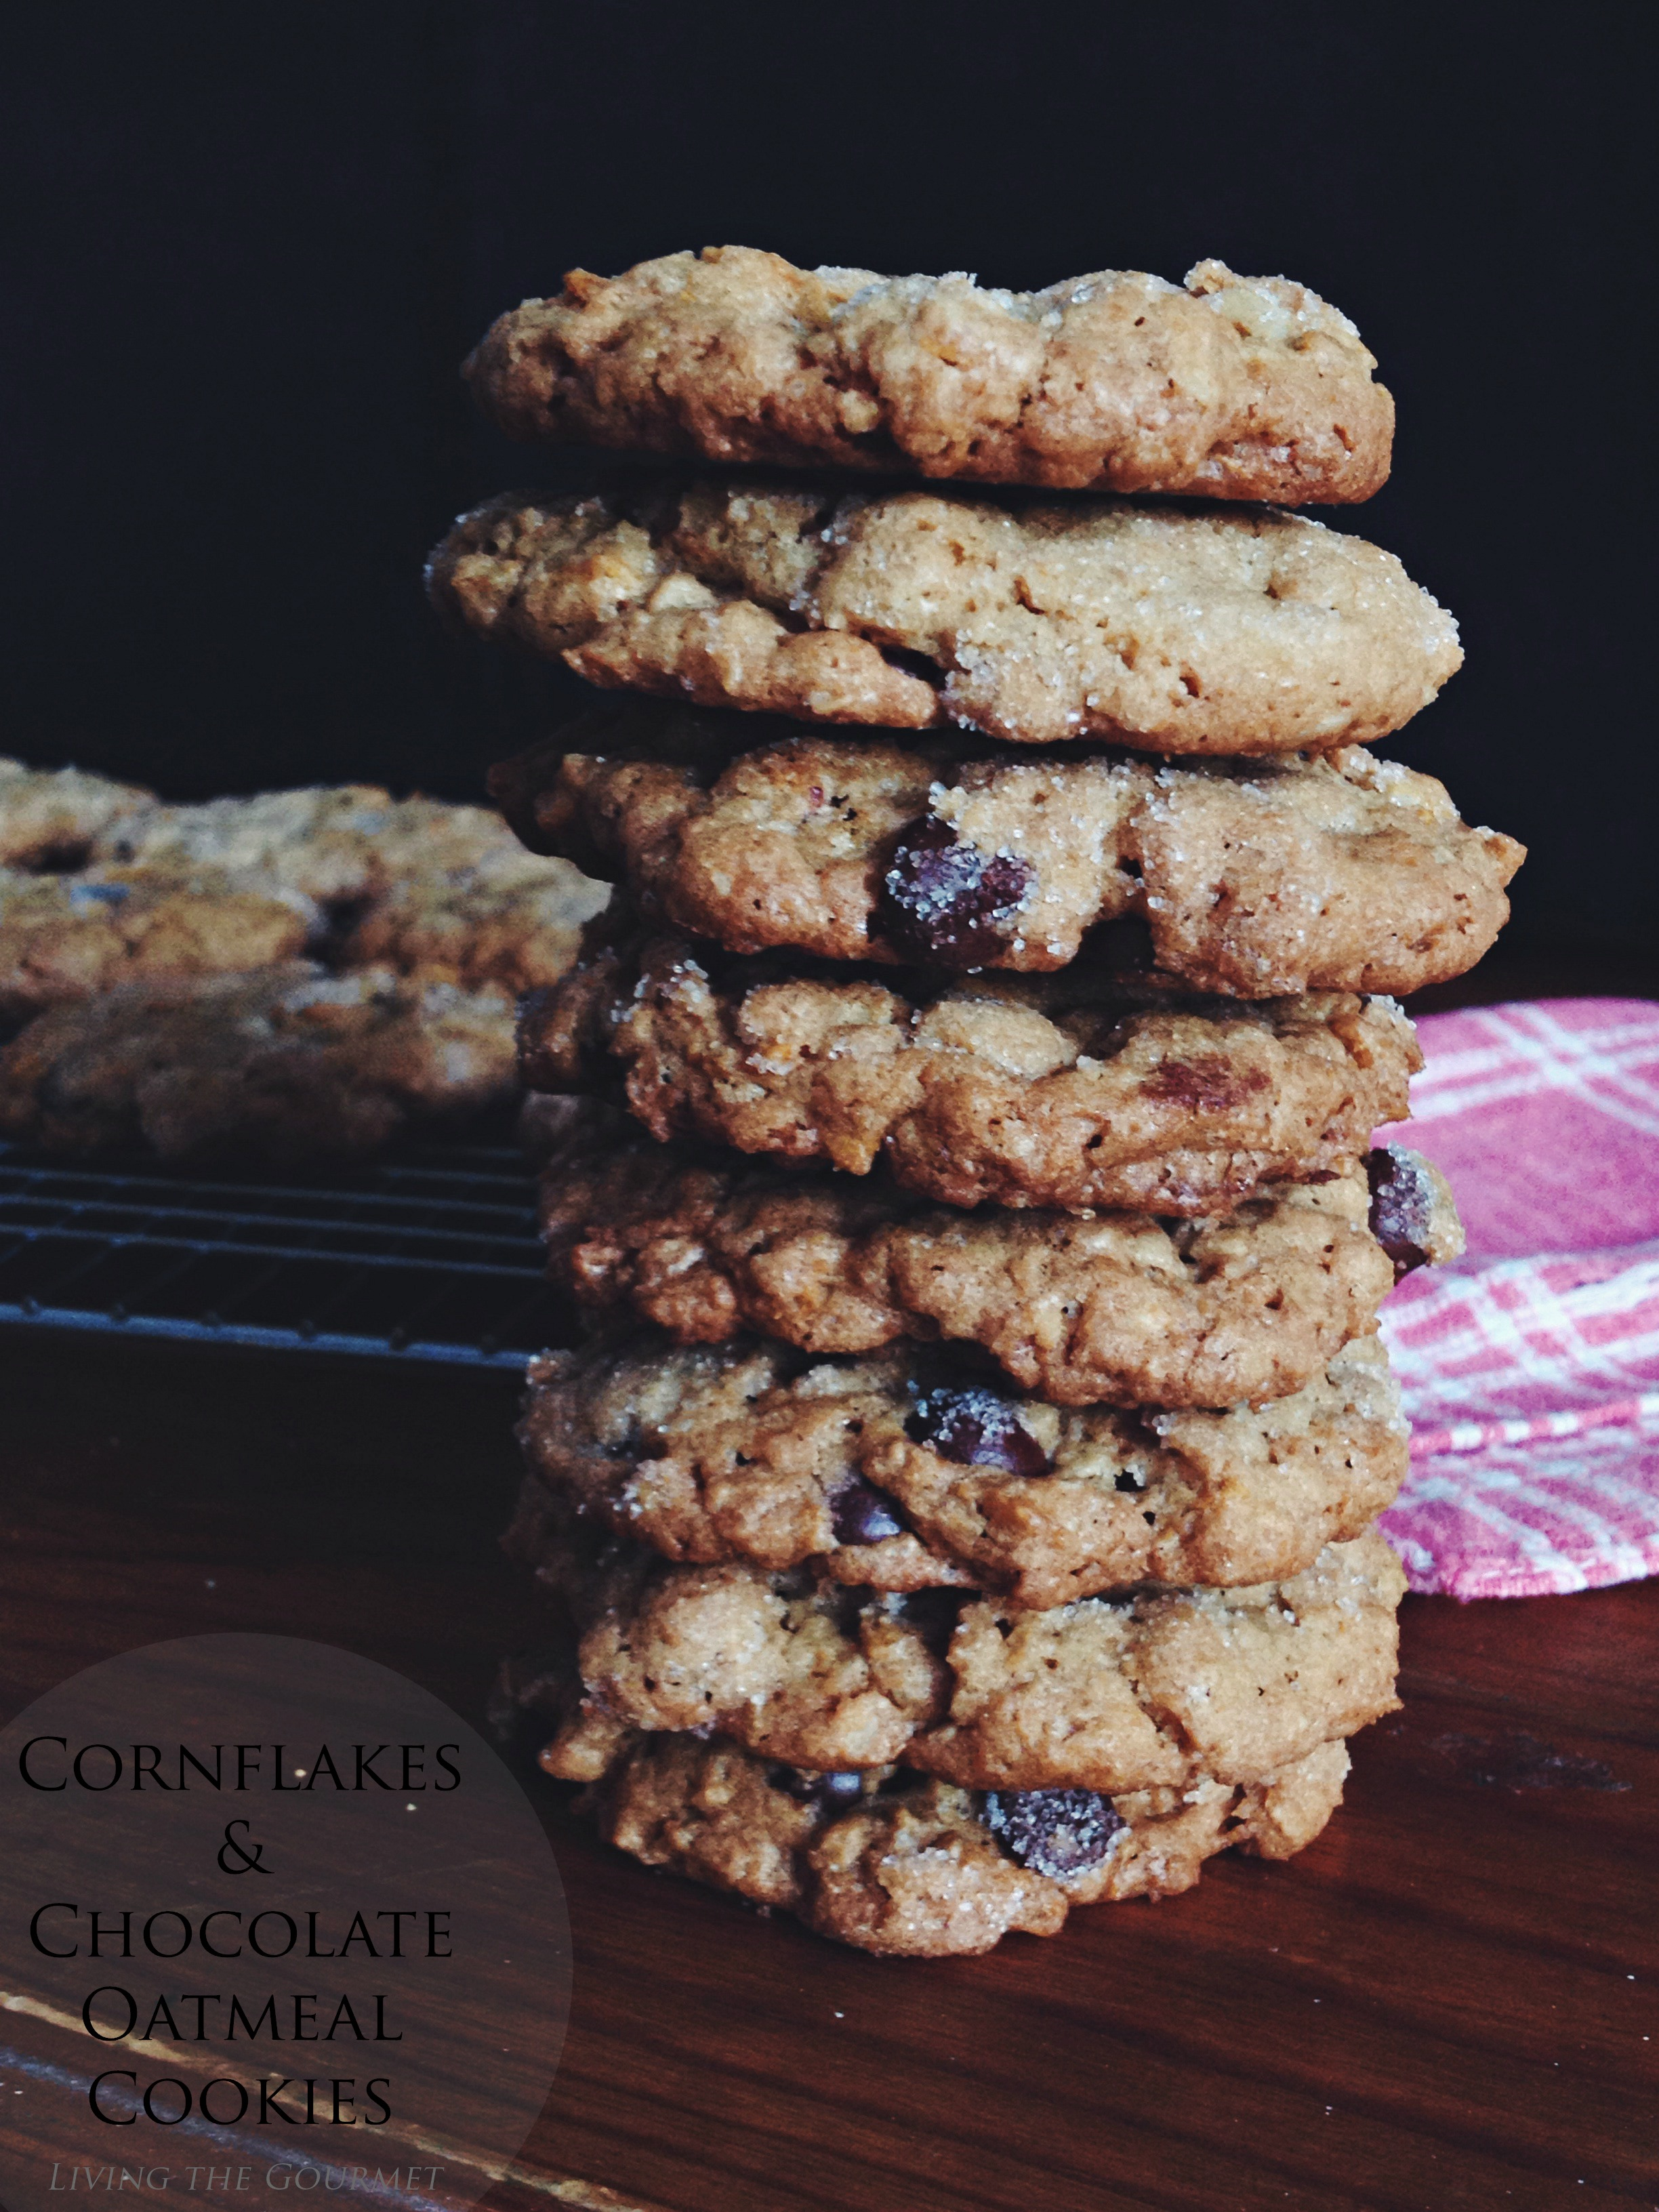 Living the Gourmet: Cornflakes & Chocolate Oatmeal Cookies